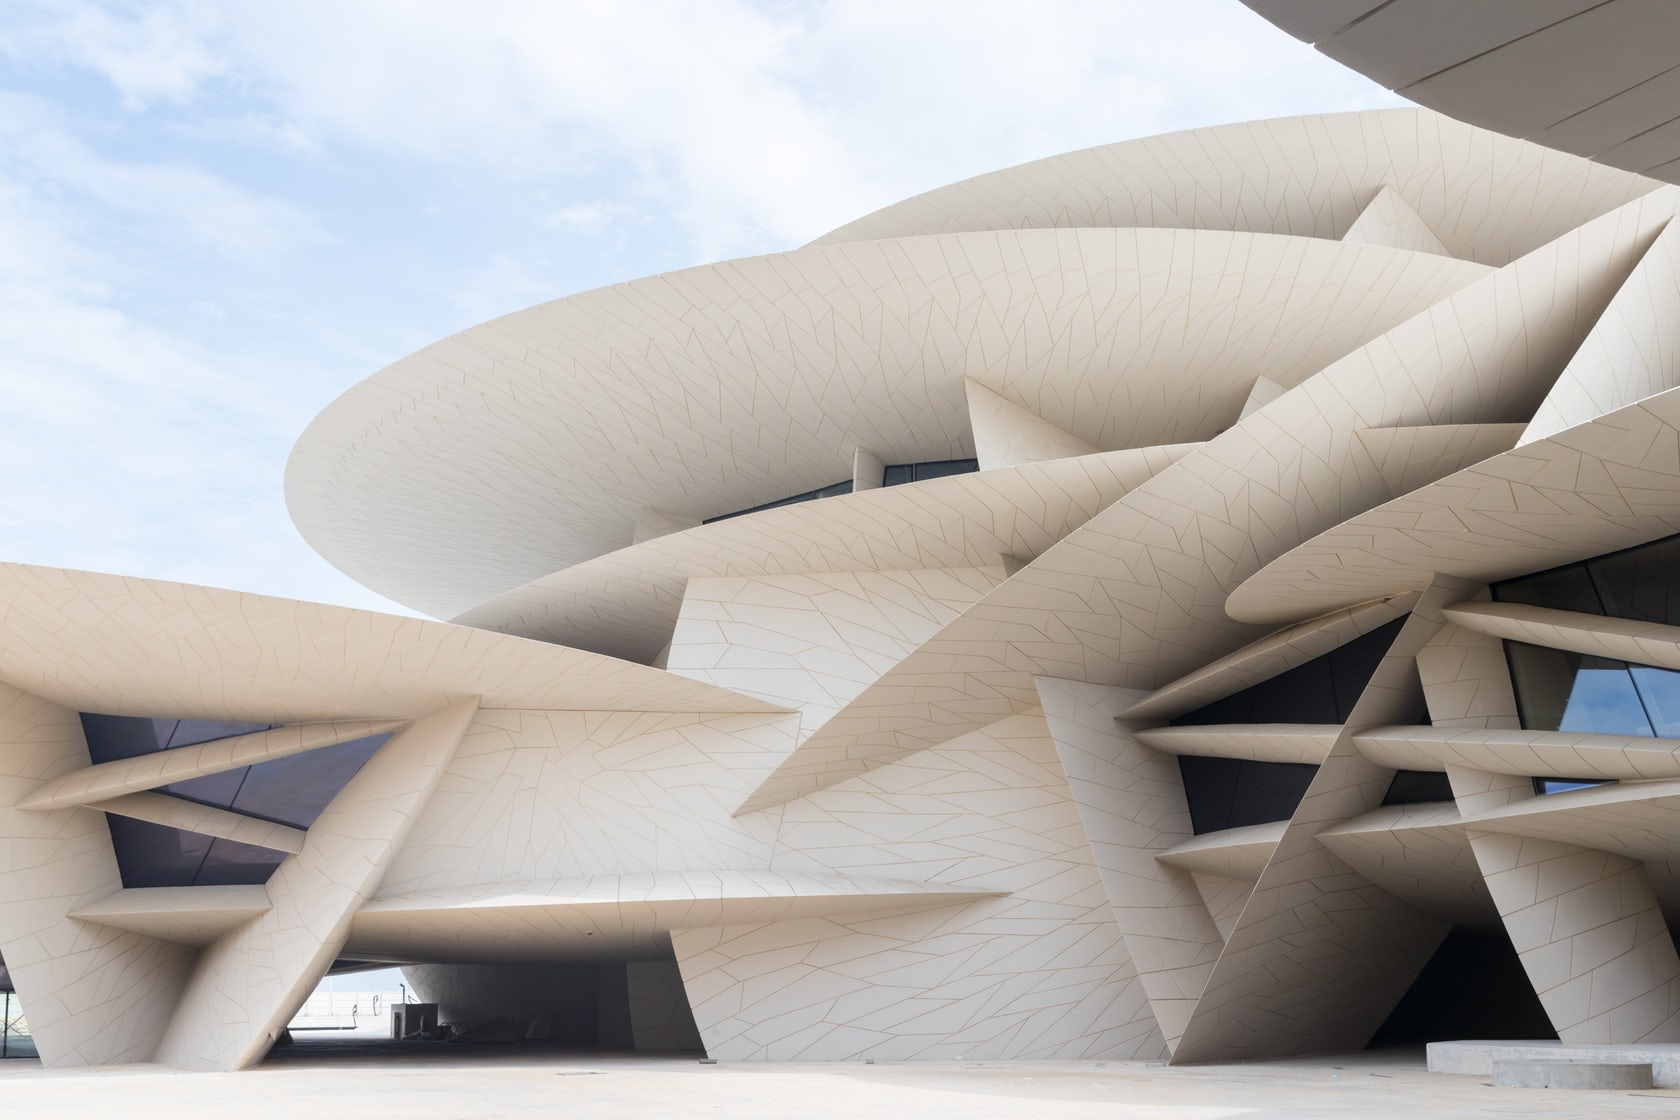 Jean Nouvel Presents National Museum Of Qatar in Doha